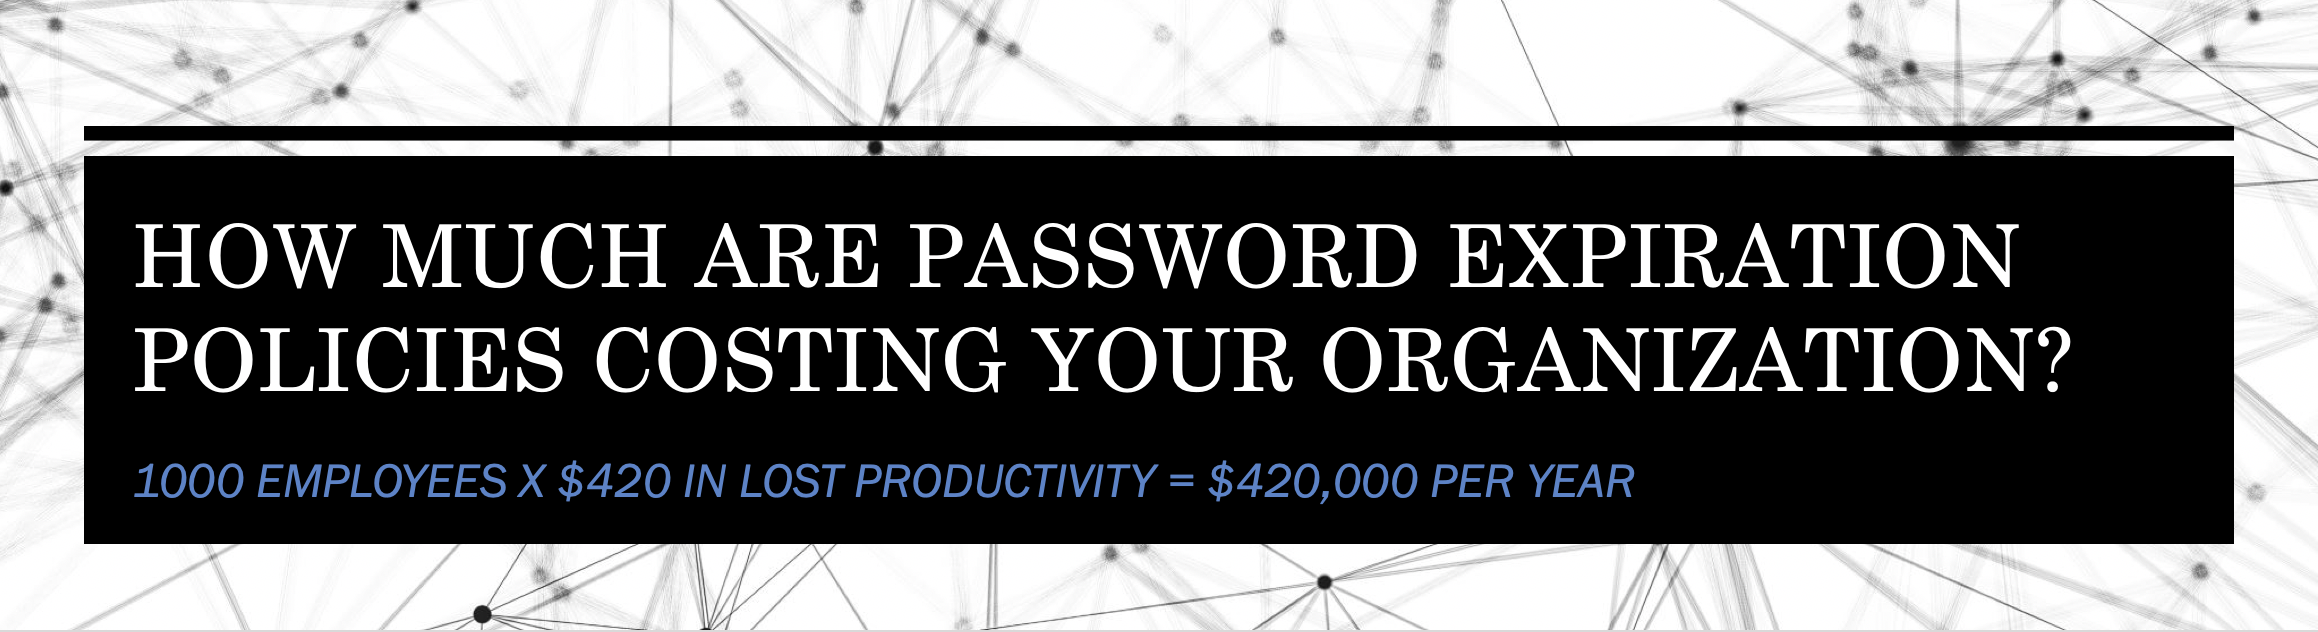 How much are password expiration policies costing your organization?  It is likely a lot more than you think.  The lost productivity on average per employee is estimated at $420 per year.  For 1000 employees, that is $420,000 per year.  https://www.enzoic.com/cost-password-expiration-policies/